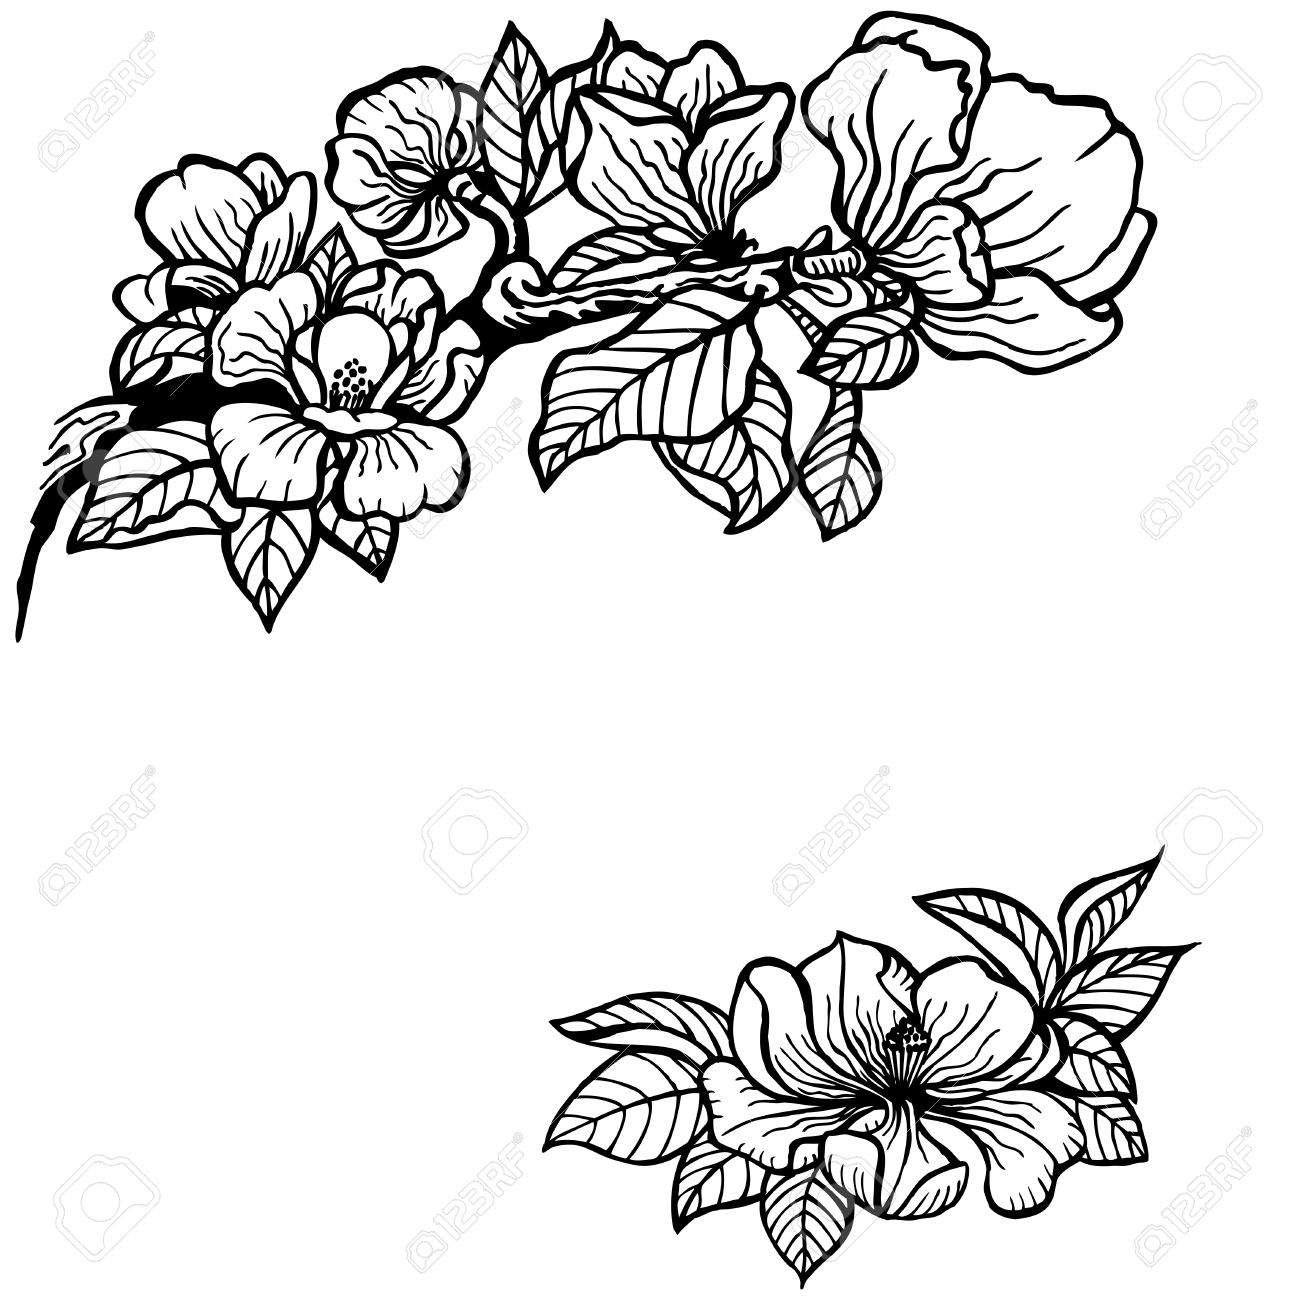 1300x1300 33740552 Twig Of Magnolia Flowers And Leaves Vintage Drawing